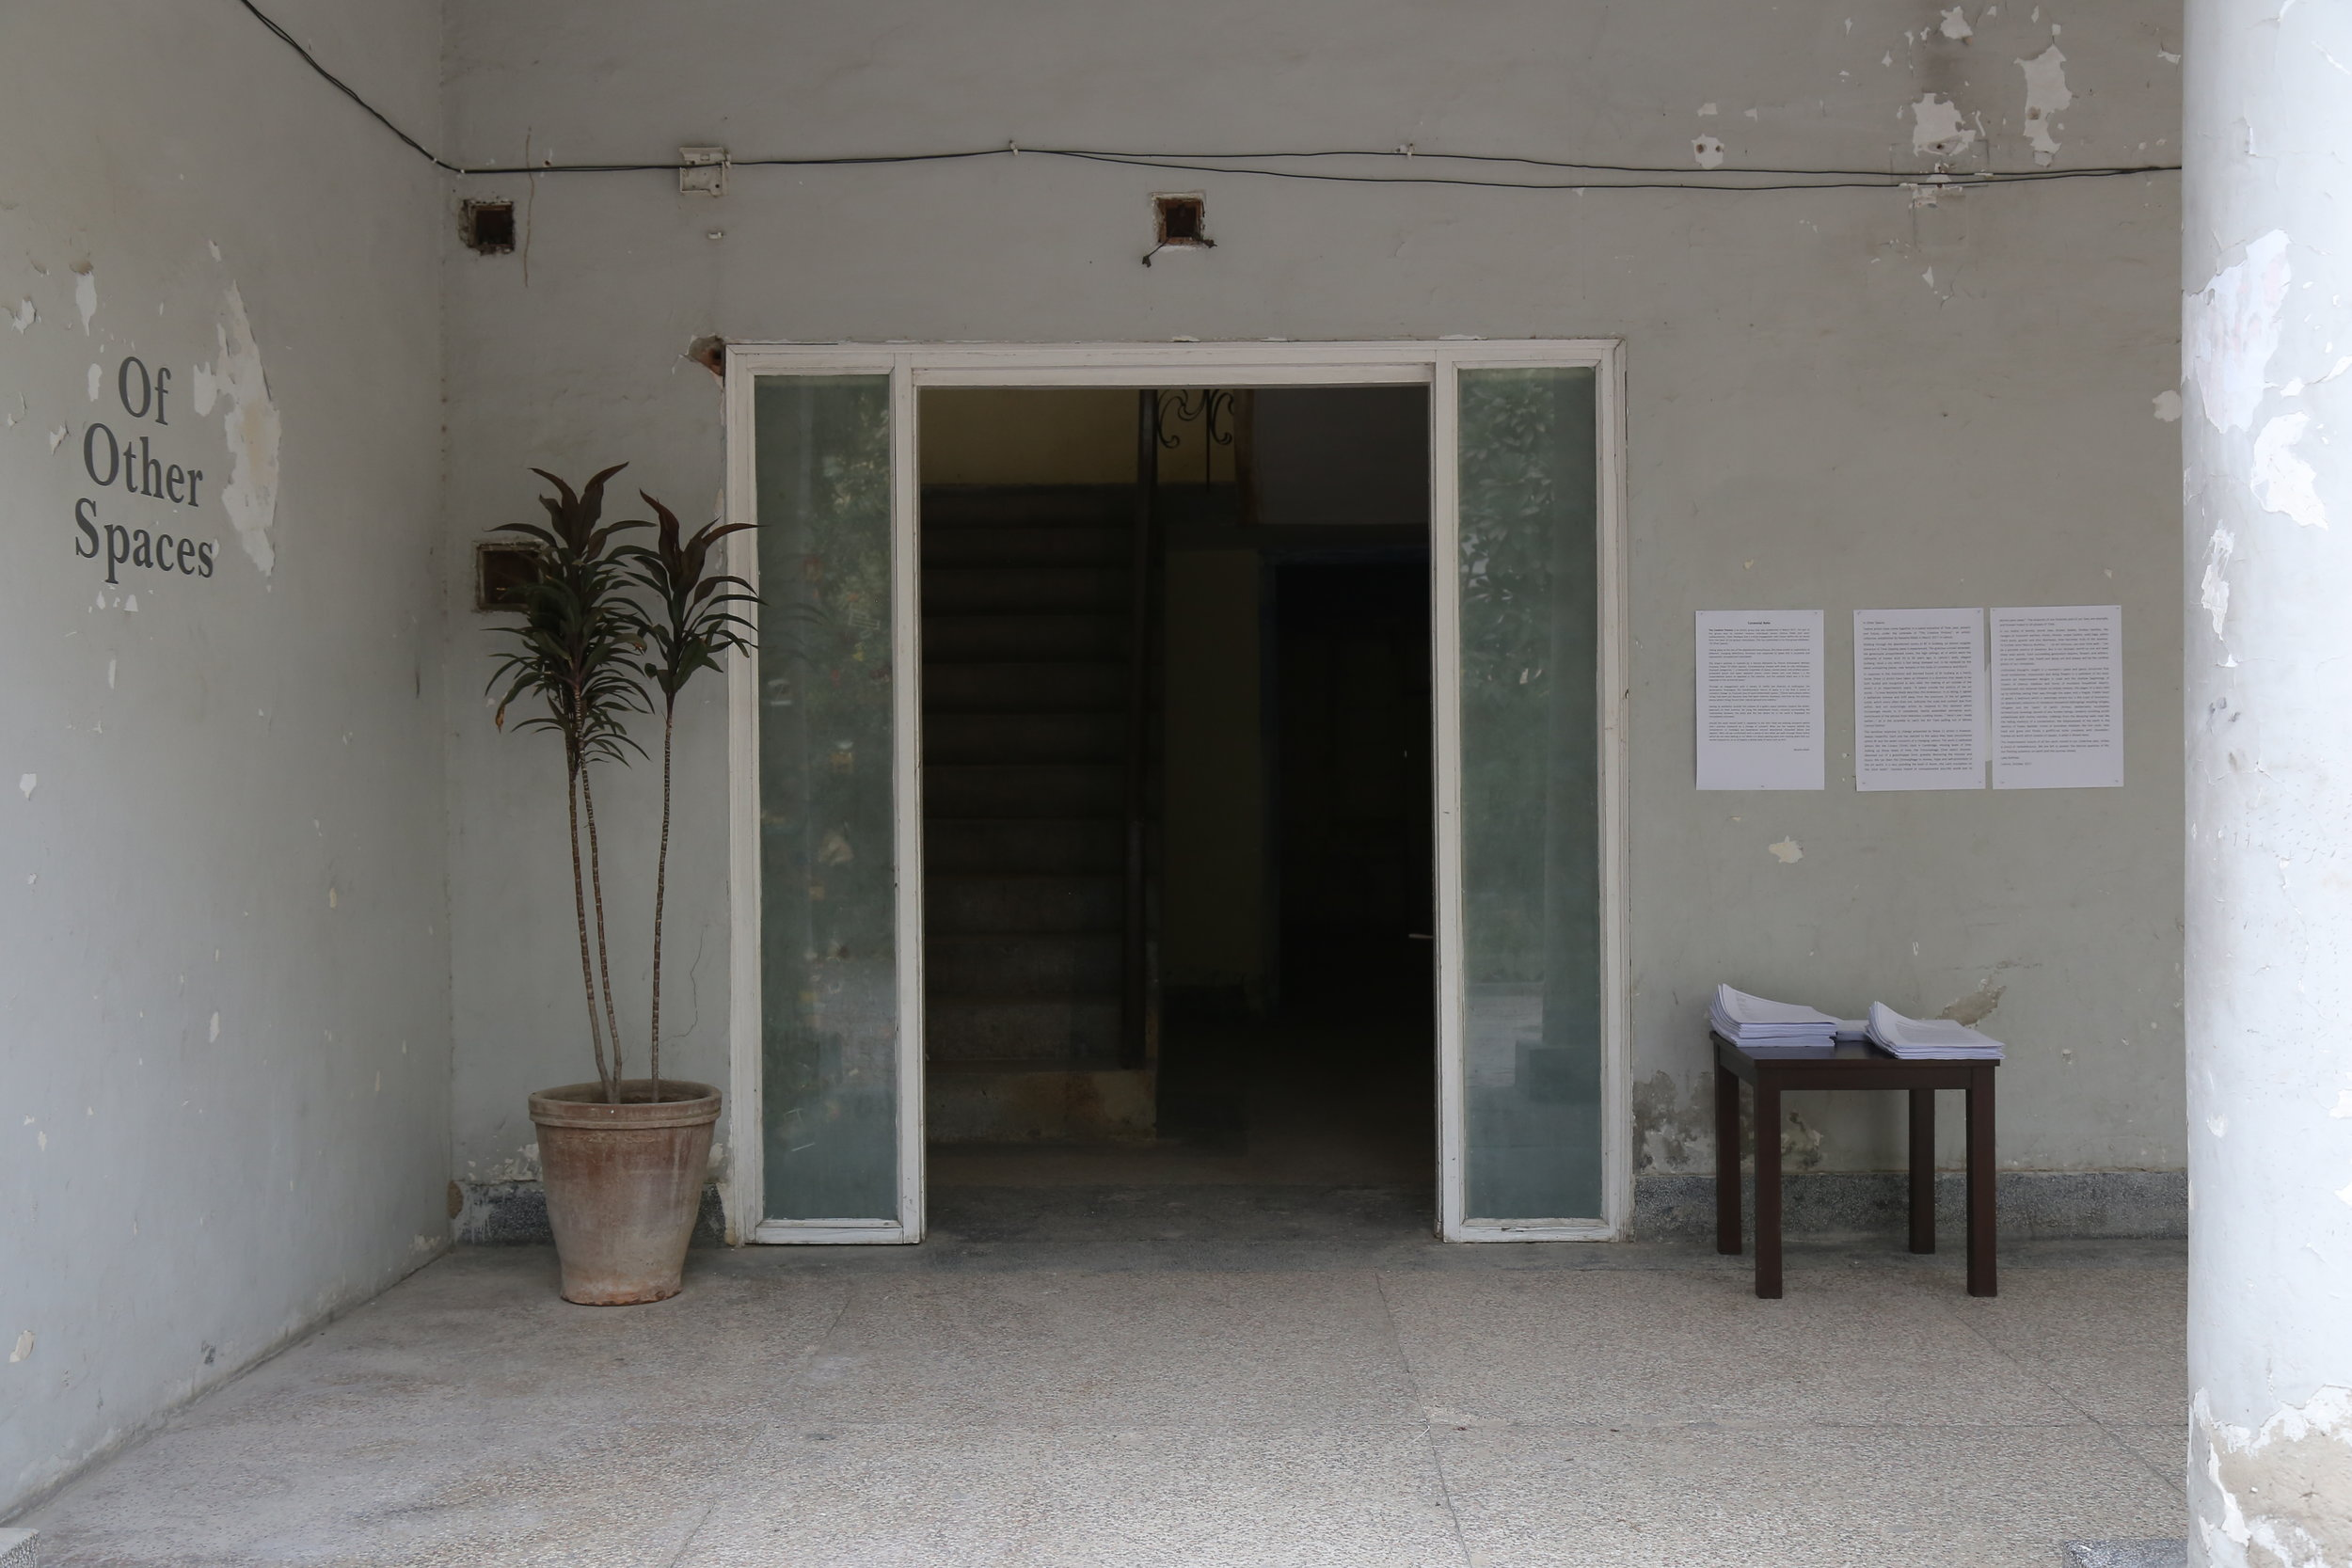 'Of Other Spaces'   Entrance   8-F, Gulberg II, Lahore  2017